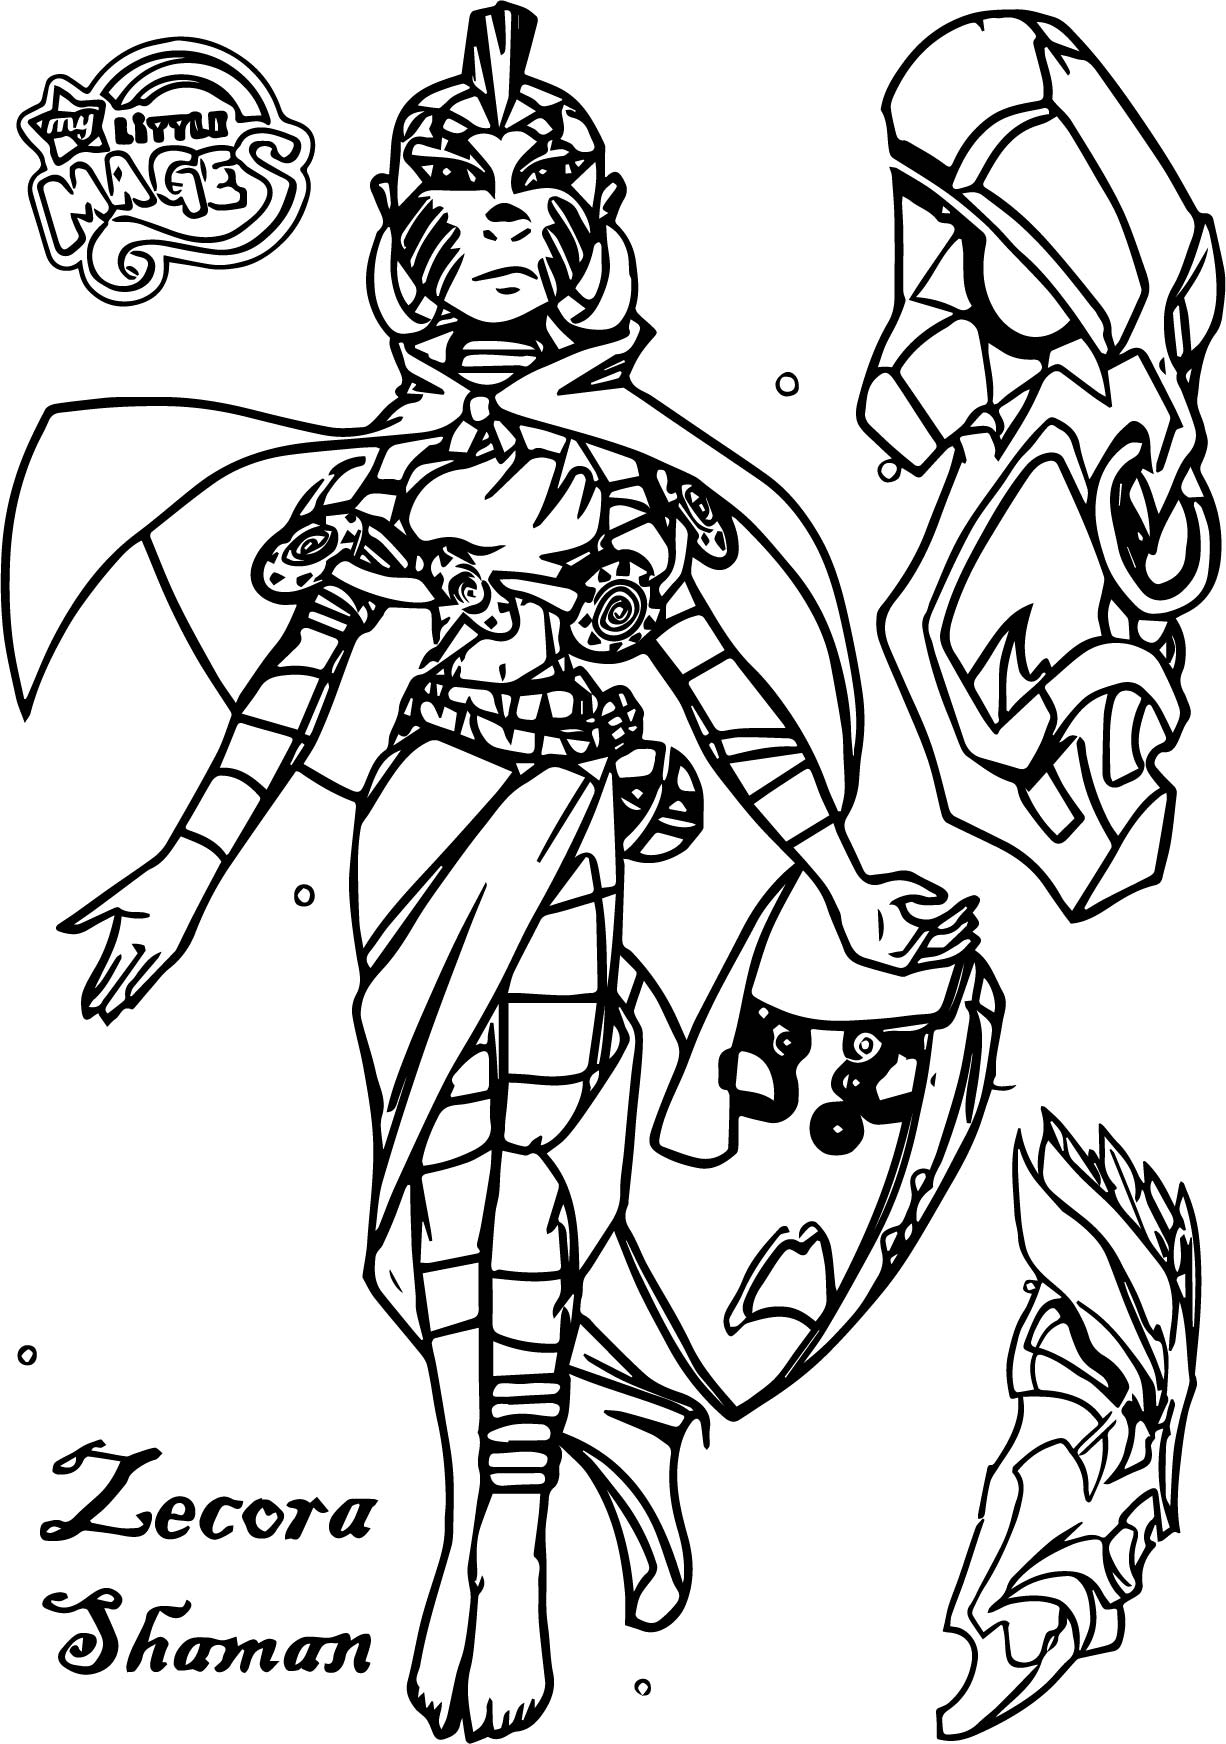 Human Humanized Mage Magic Masks My Little Mages Shaman Zecora Coloring Page